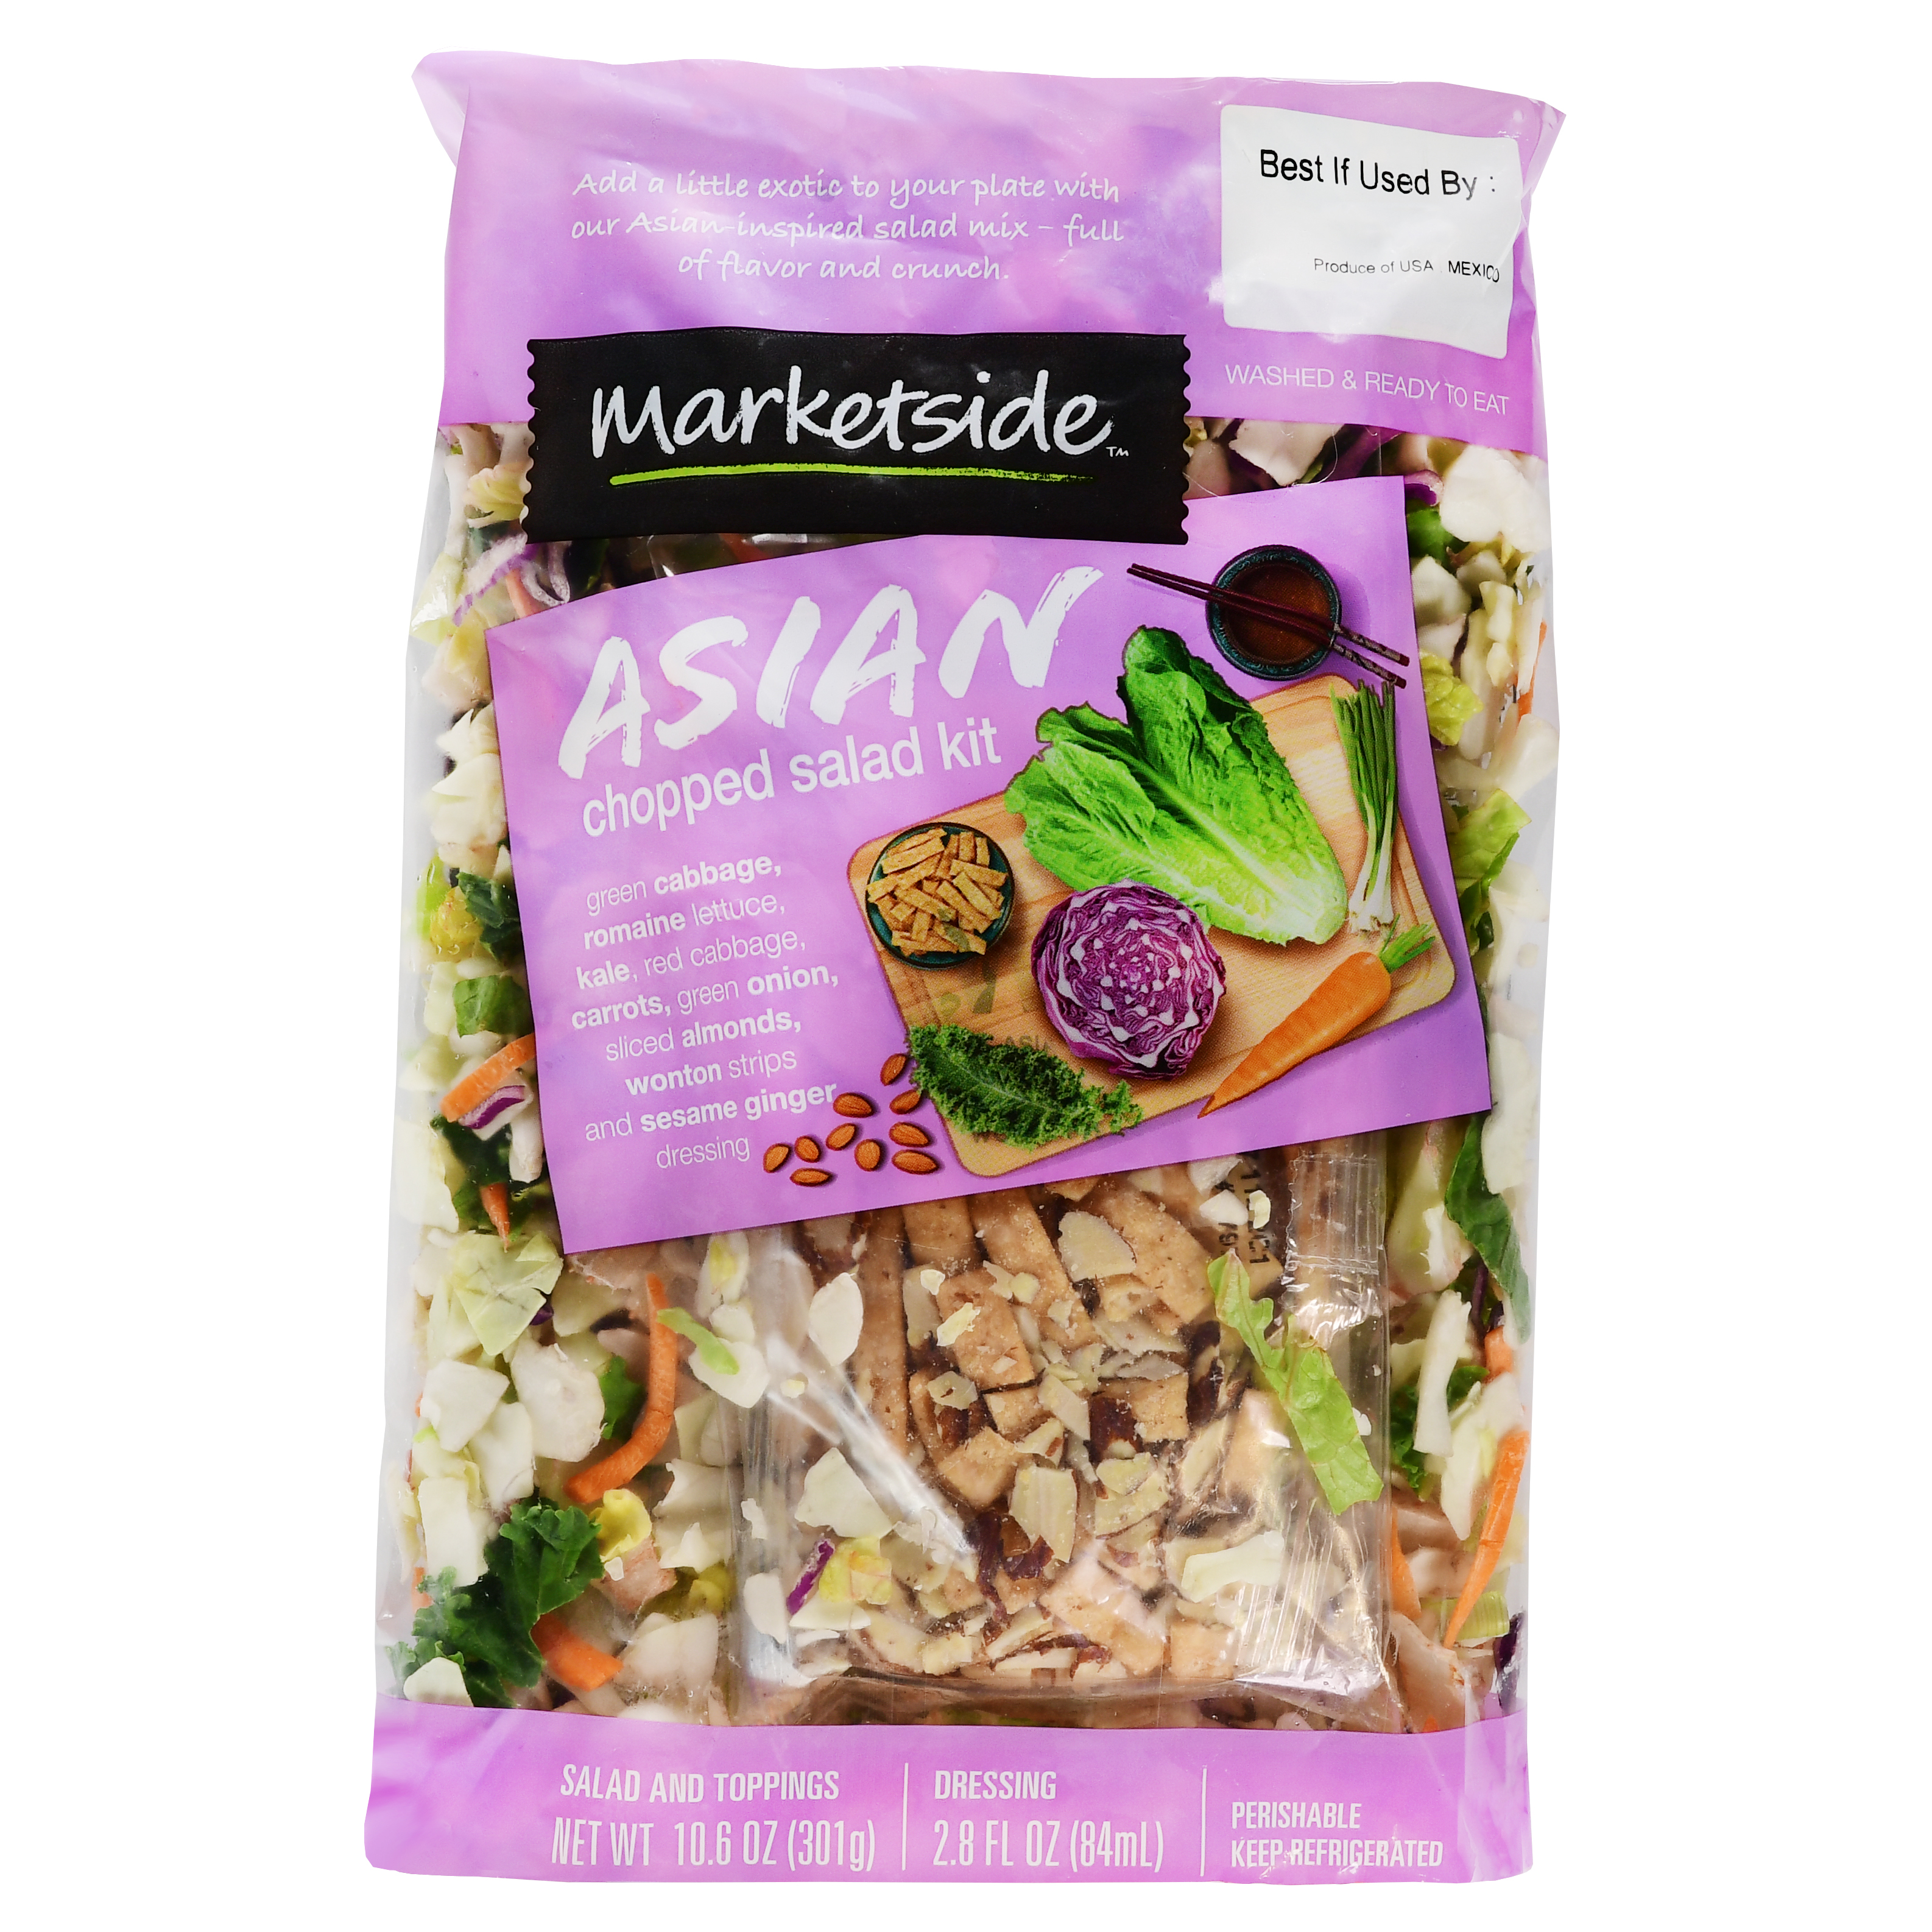 Marketside Asian Chopped Salad Kit, 13.4 oz